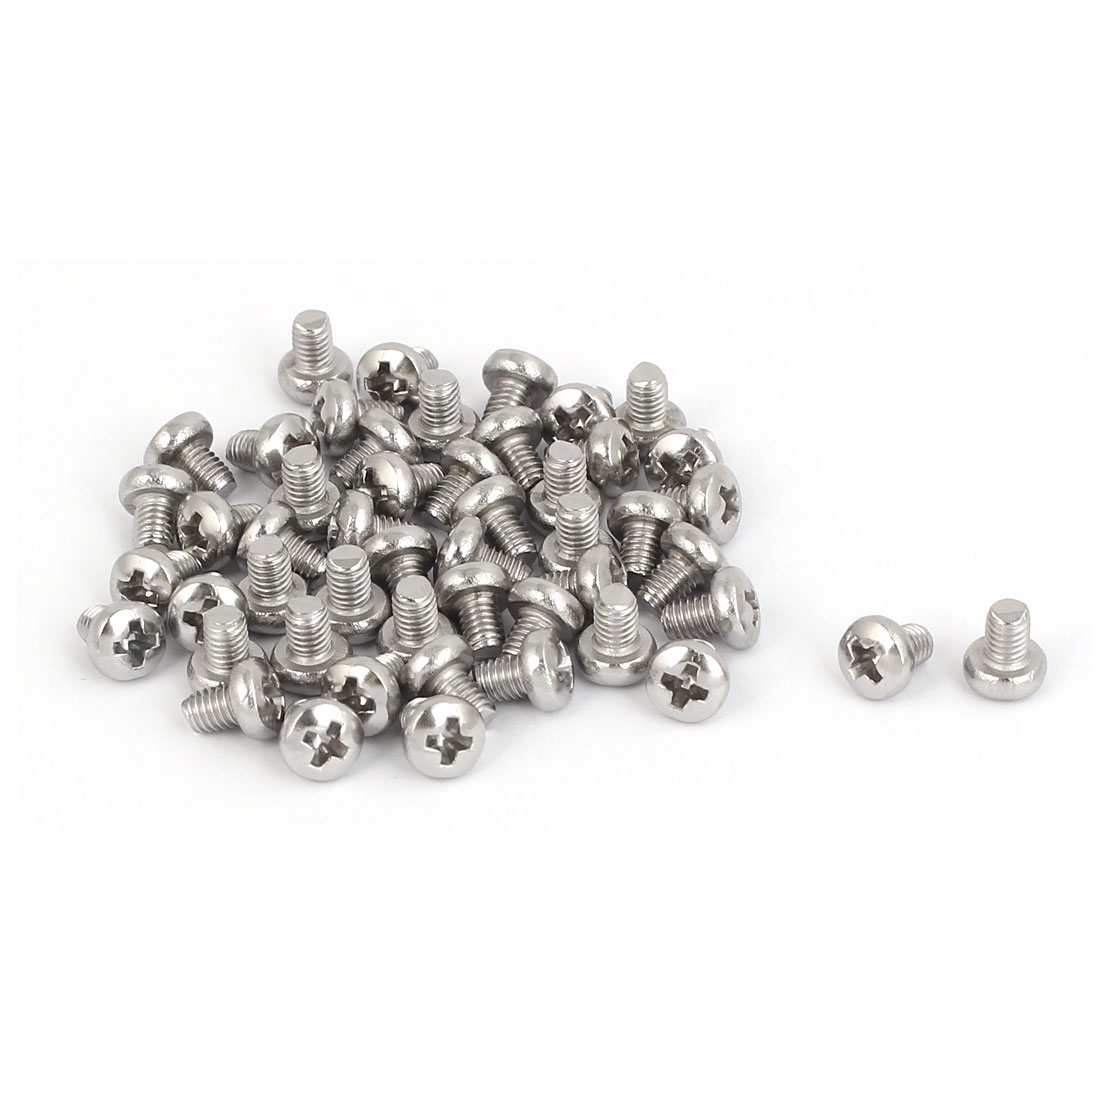 50 Pcs M3x4mm 316 Stainless Steel Phillips Pan Head Machine Screws Fasteners